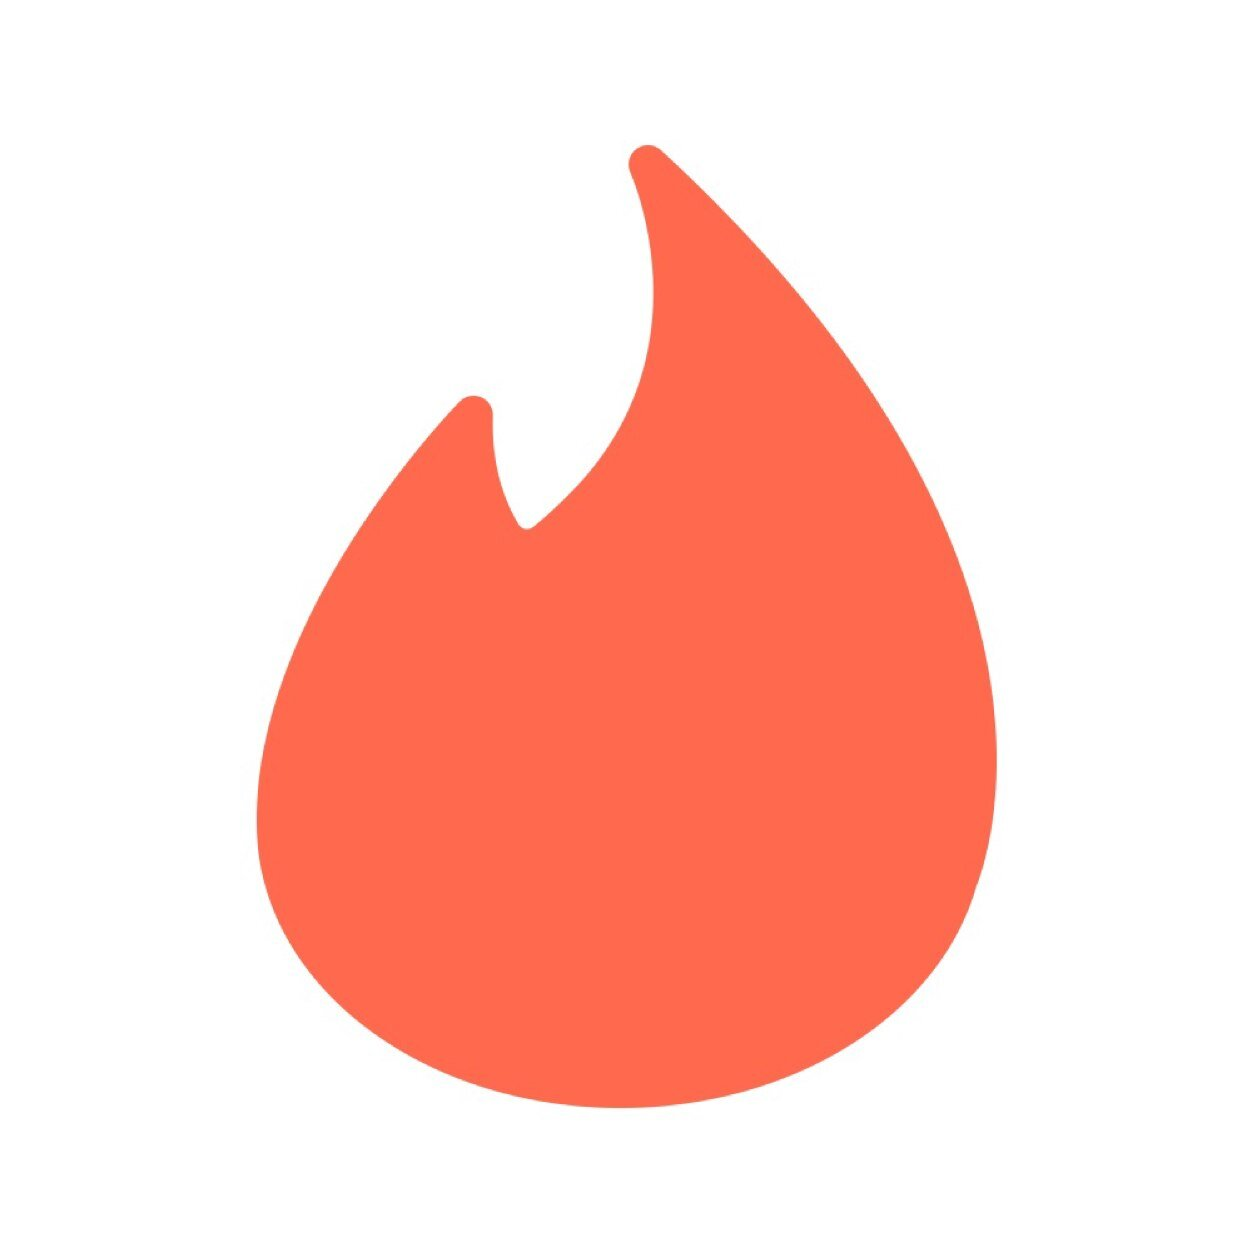 Why Tinder is not safe for kids and teens